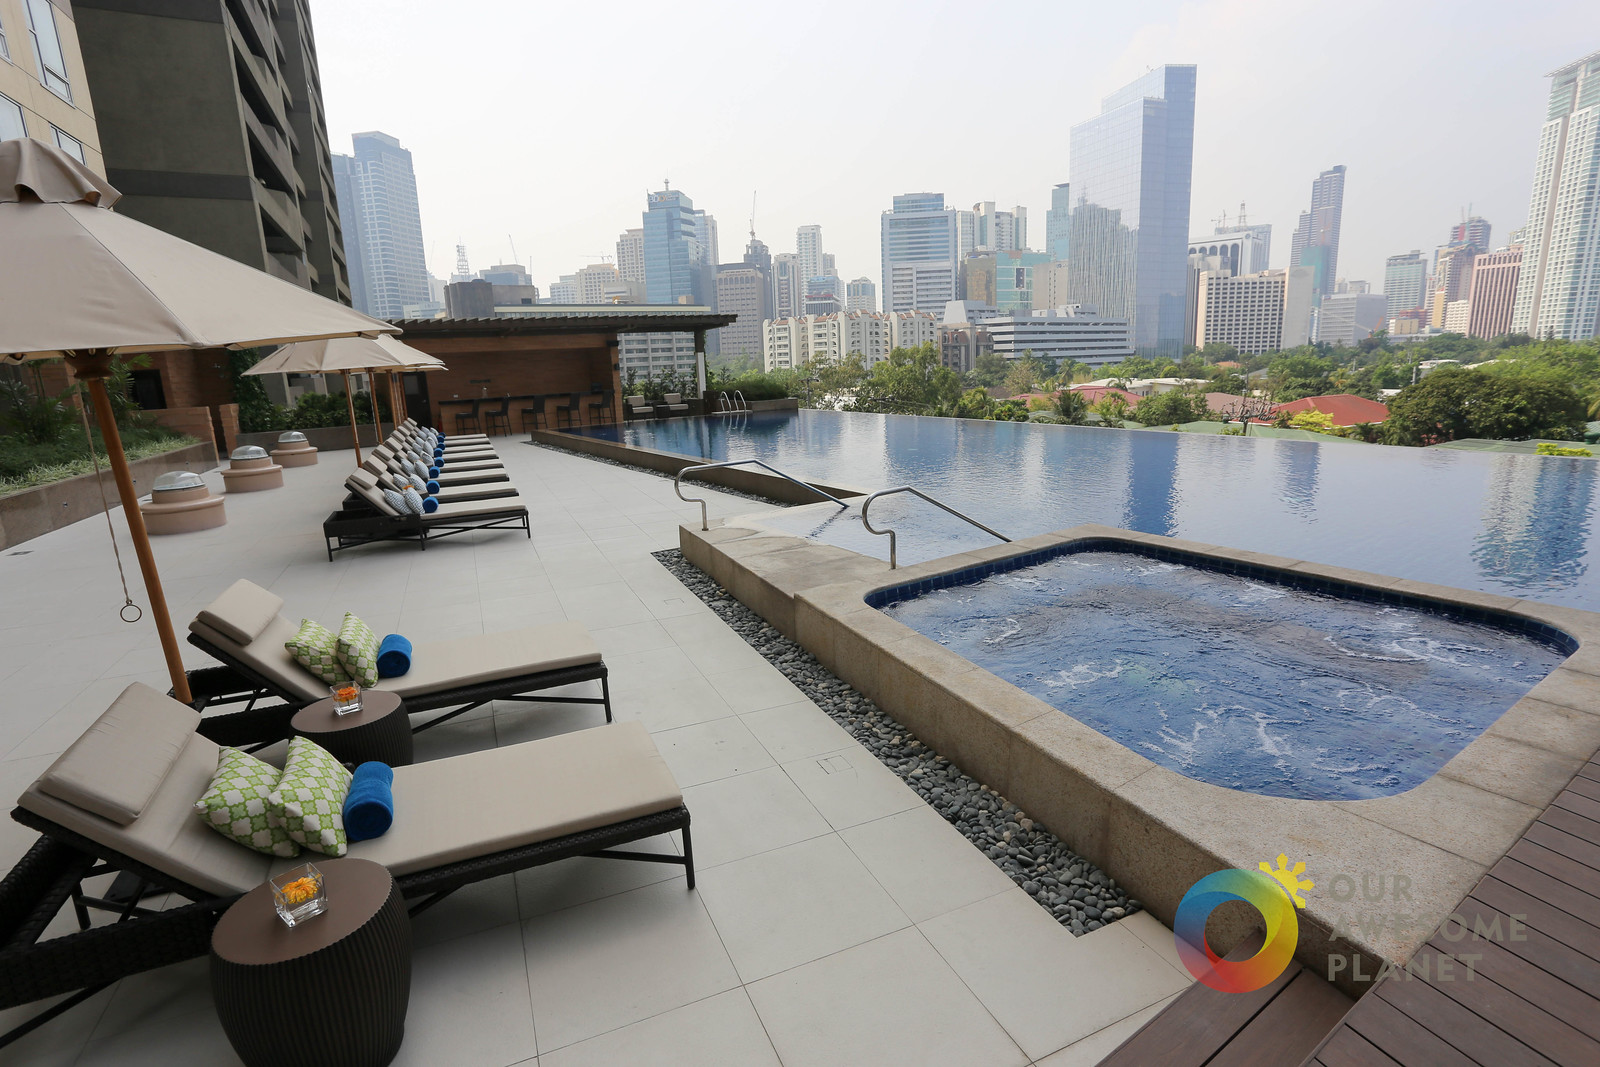 Manila wow page 228 skyscrapercity for Pool show discovery